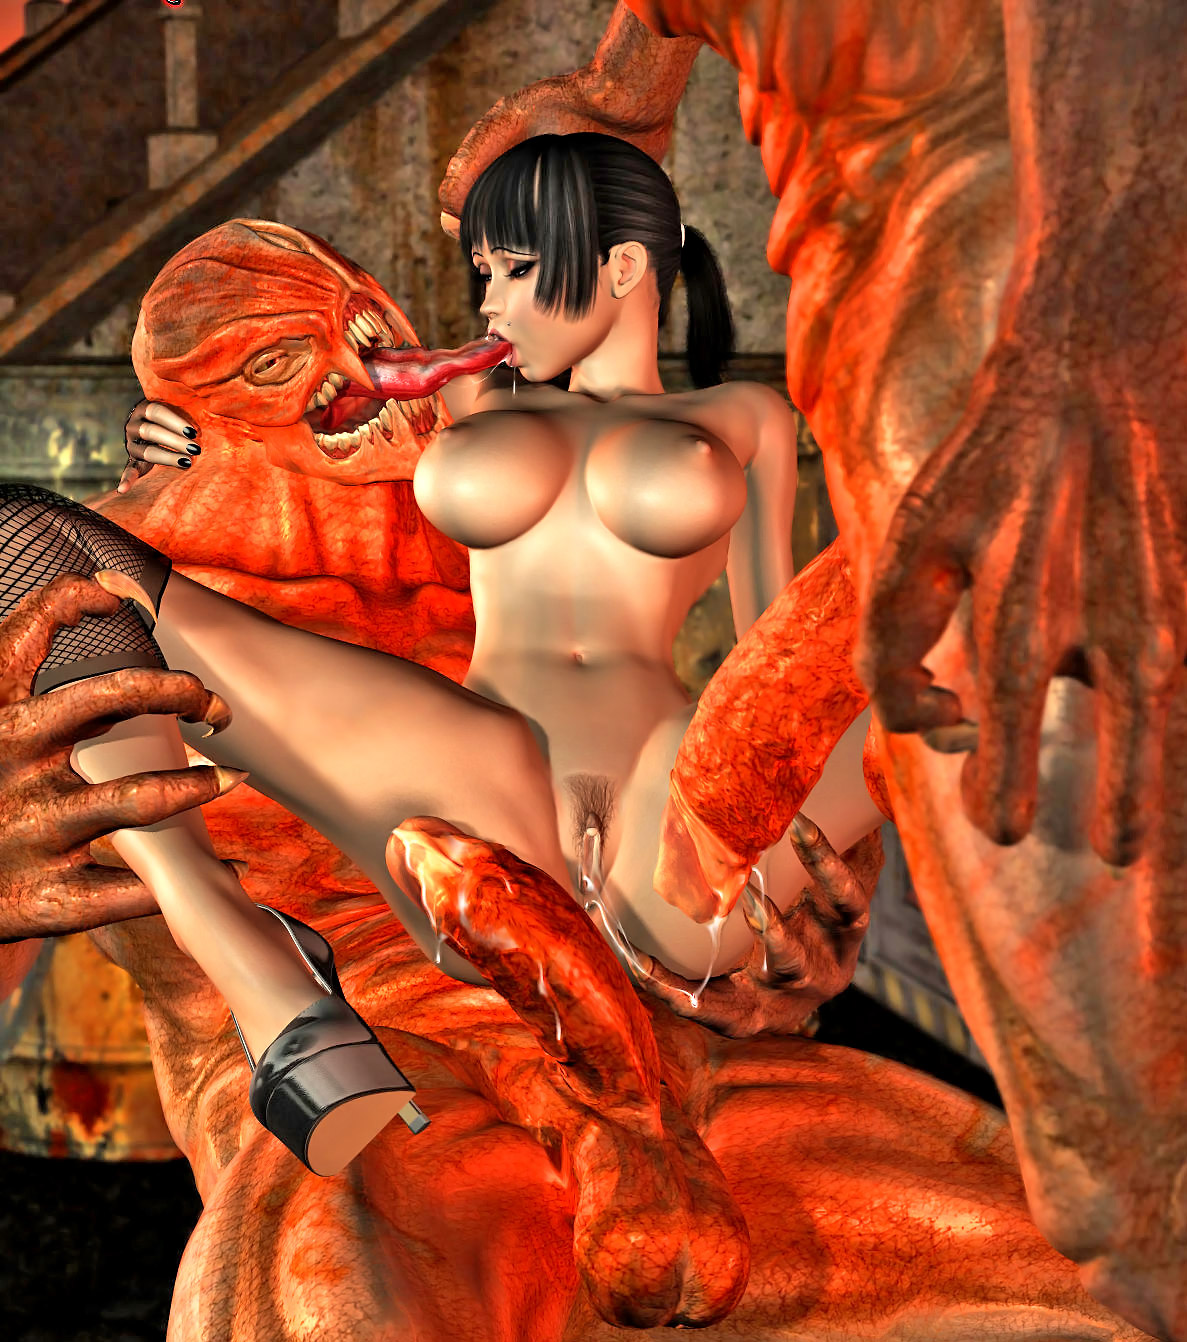 Naked girls 3d monster cartoon erotica pic